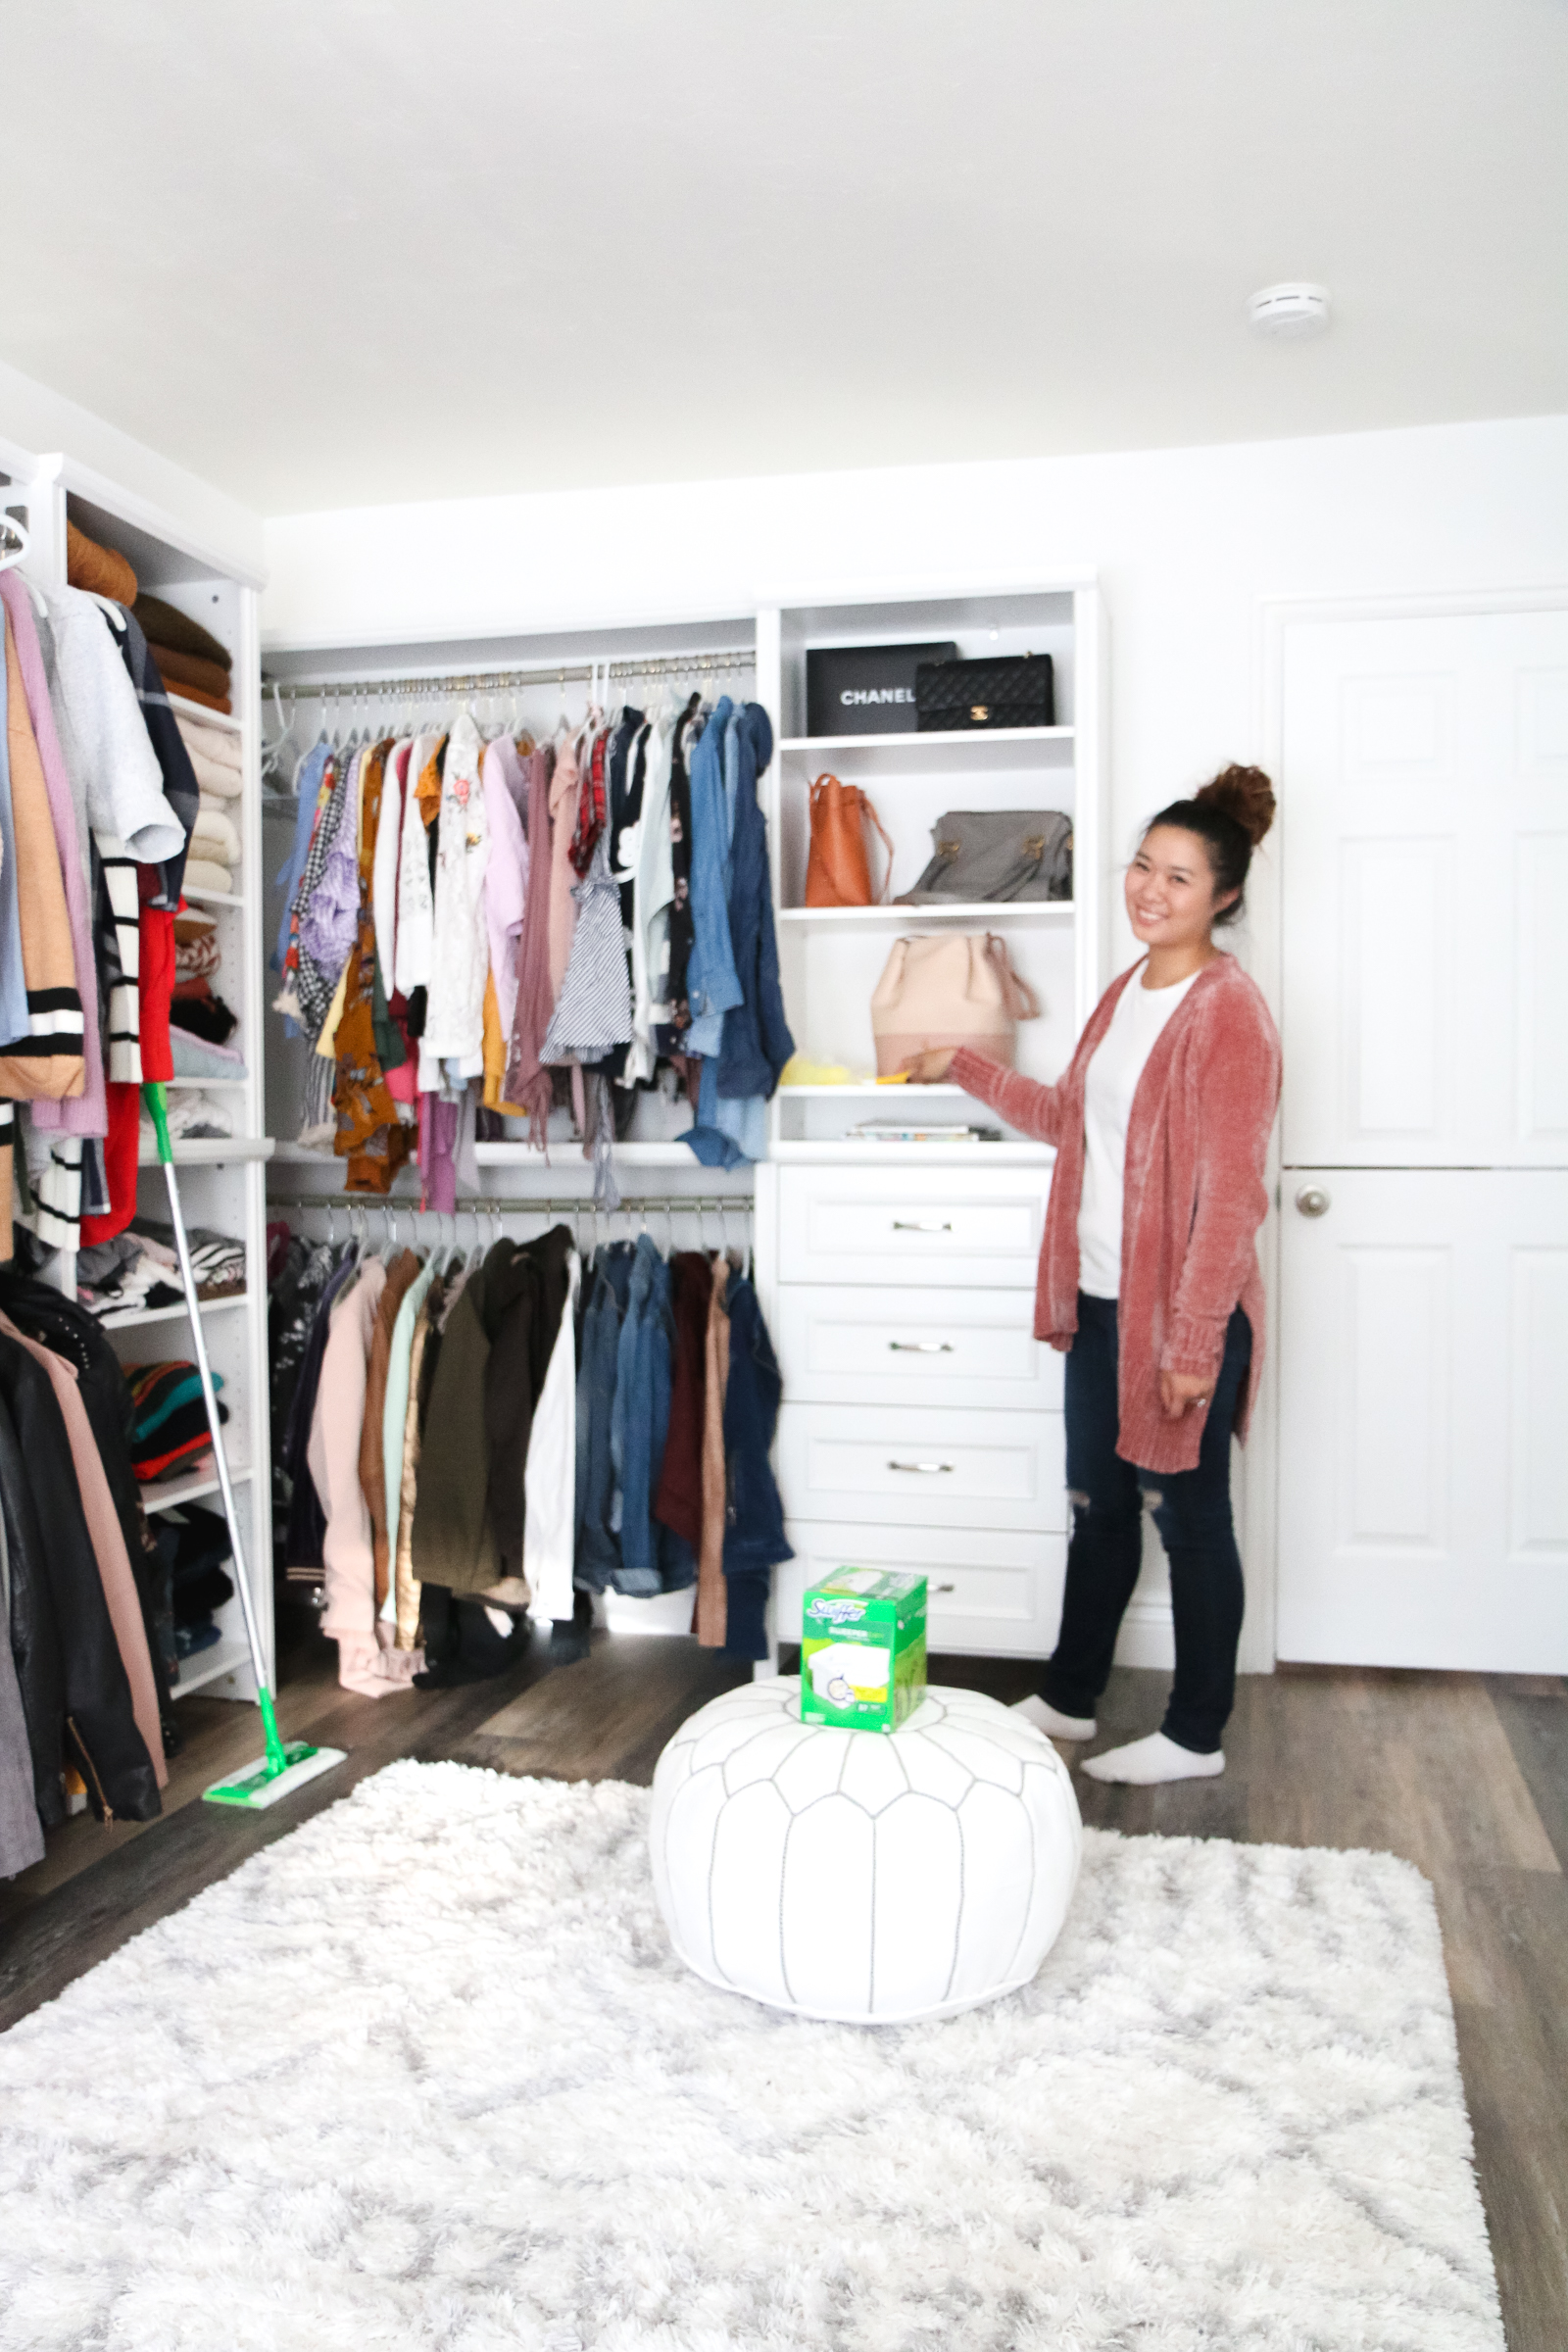 Awesome Adulting Tips - How Adulting Can Be Made Easier by popular Utah blogger Sandy A La Mode